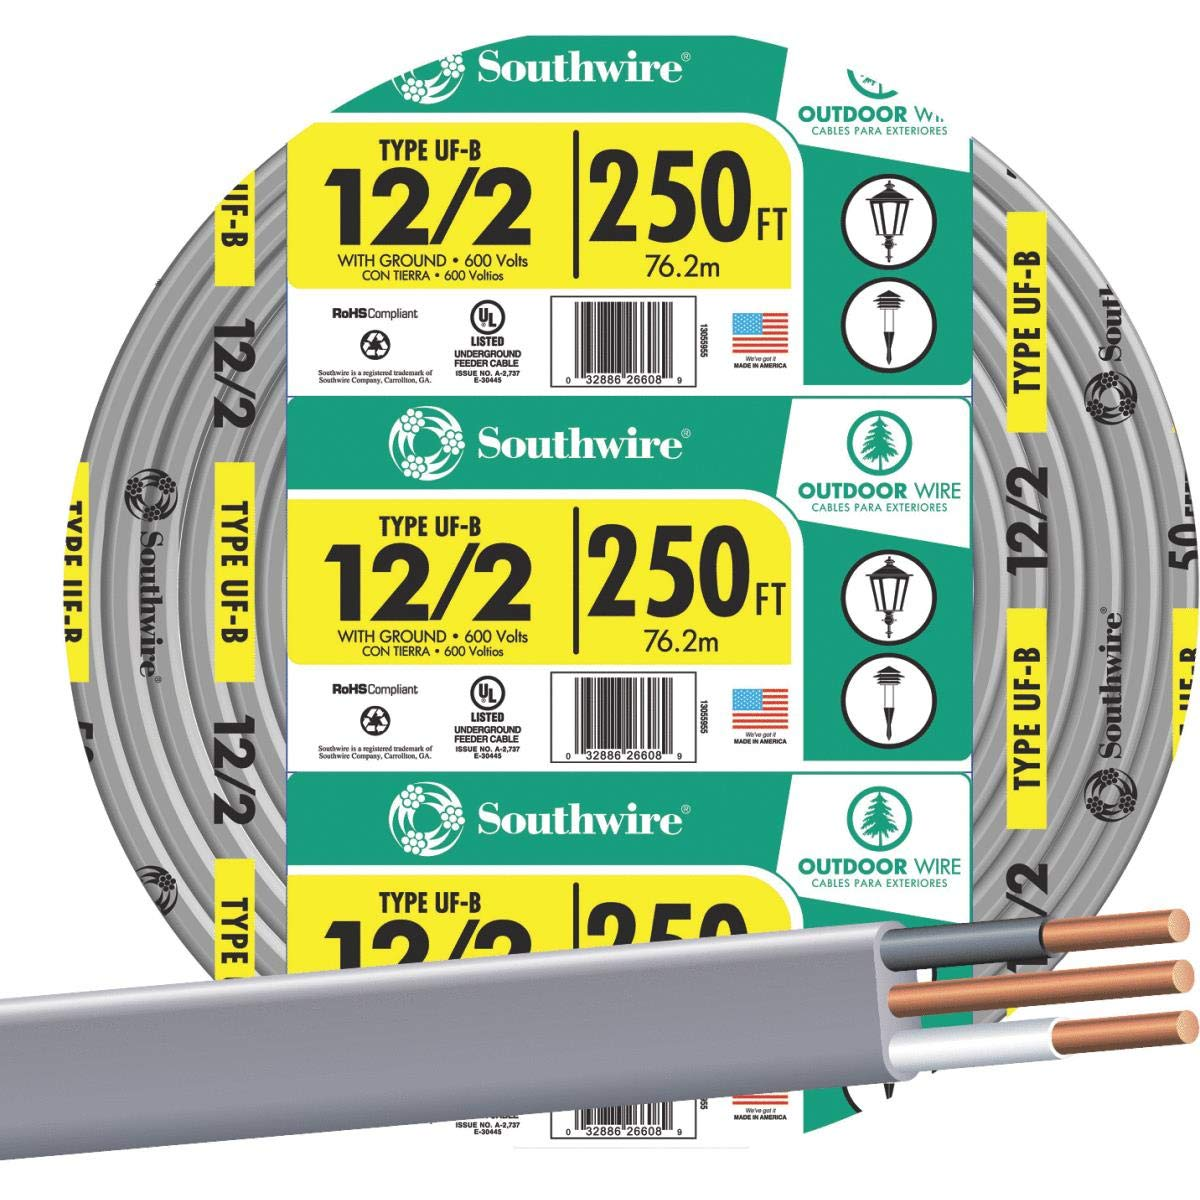 Ufb Cable Wesbell Wire And Cable Blog